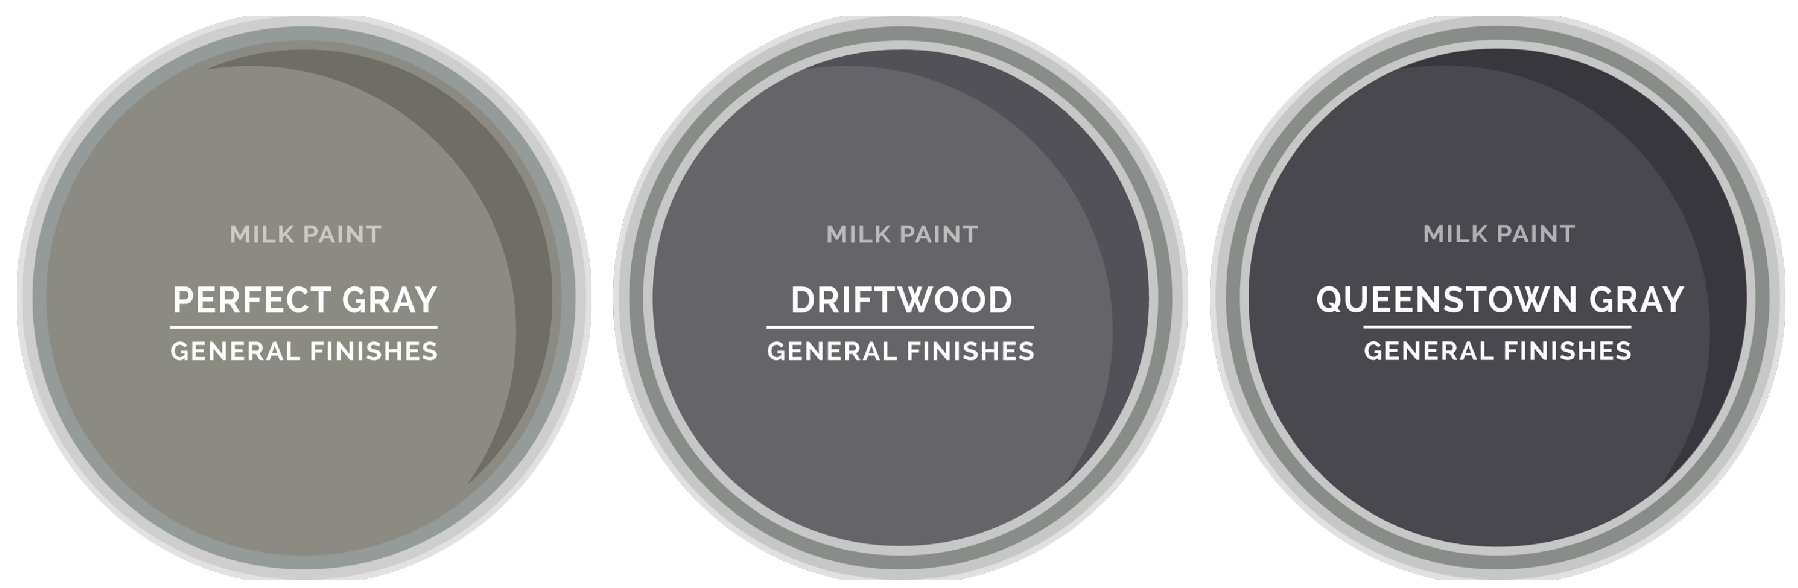 Comparison of Driftwood, Perfect Gray and Queenstown by General Finishes Milk Paint